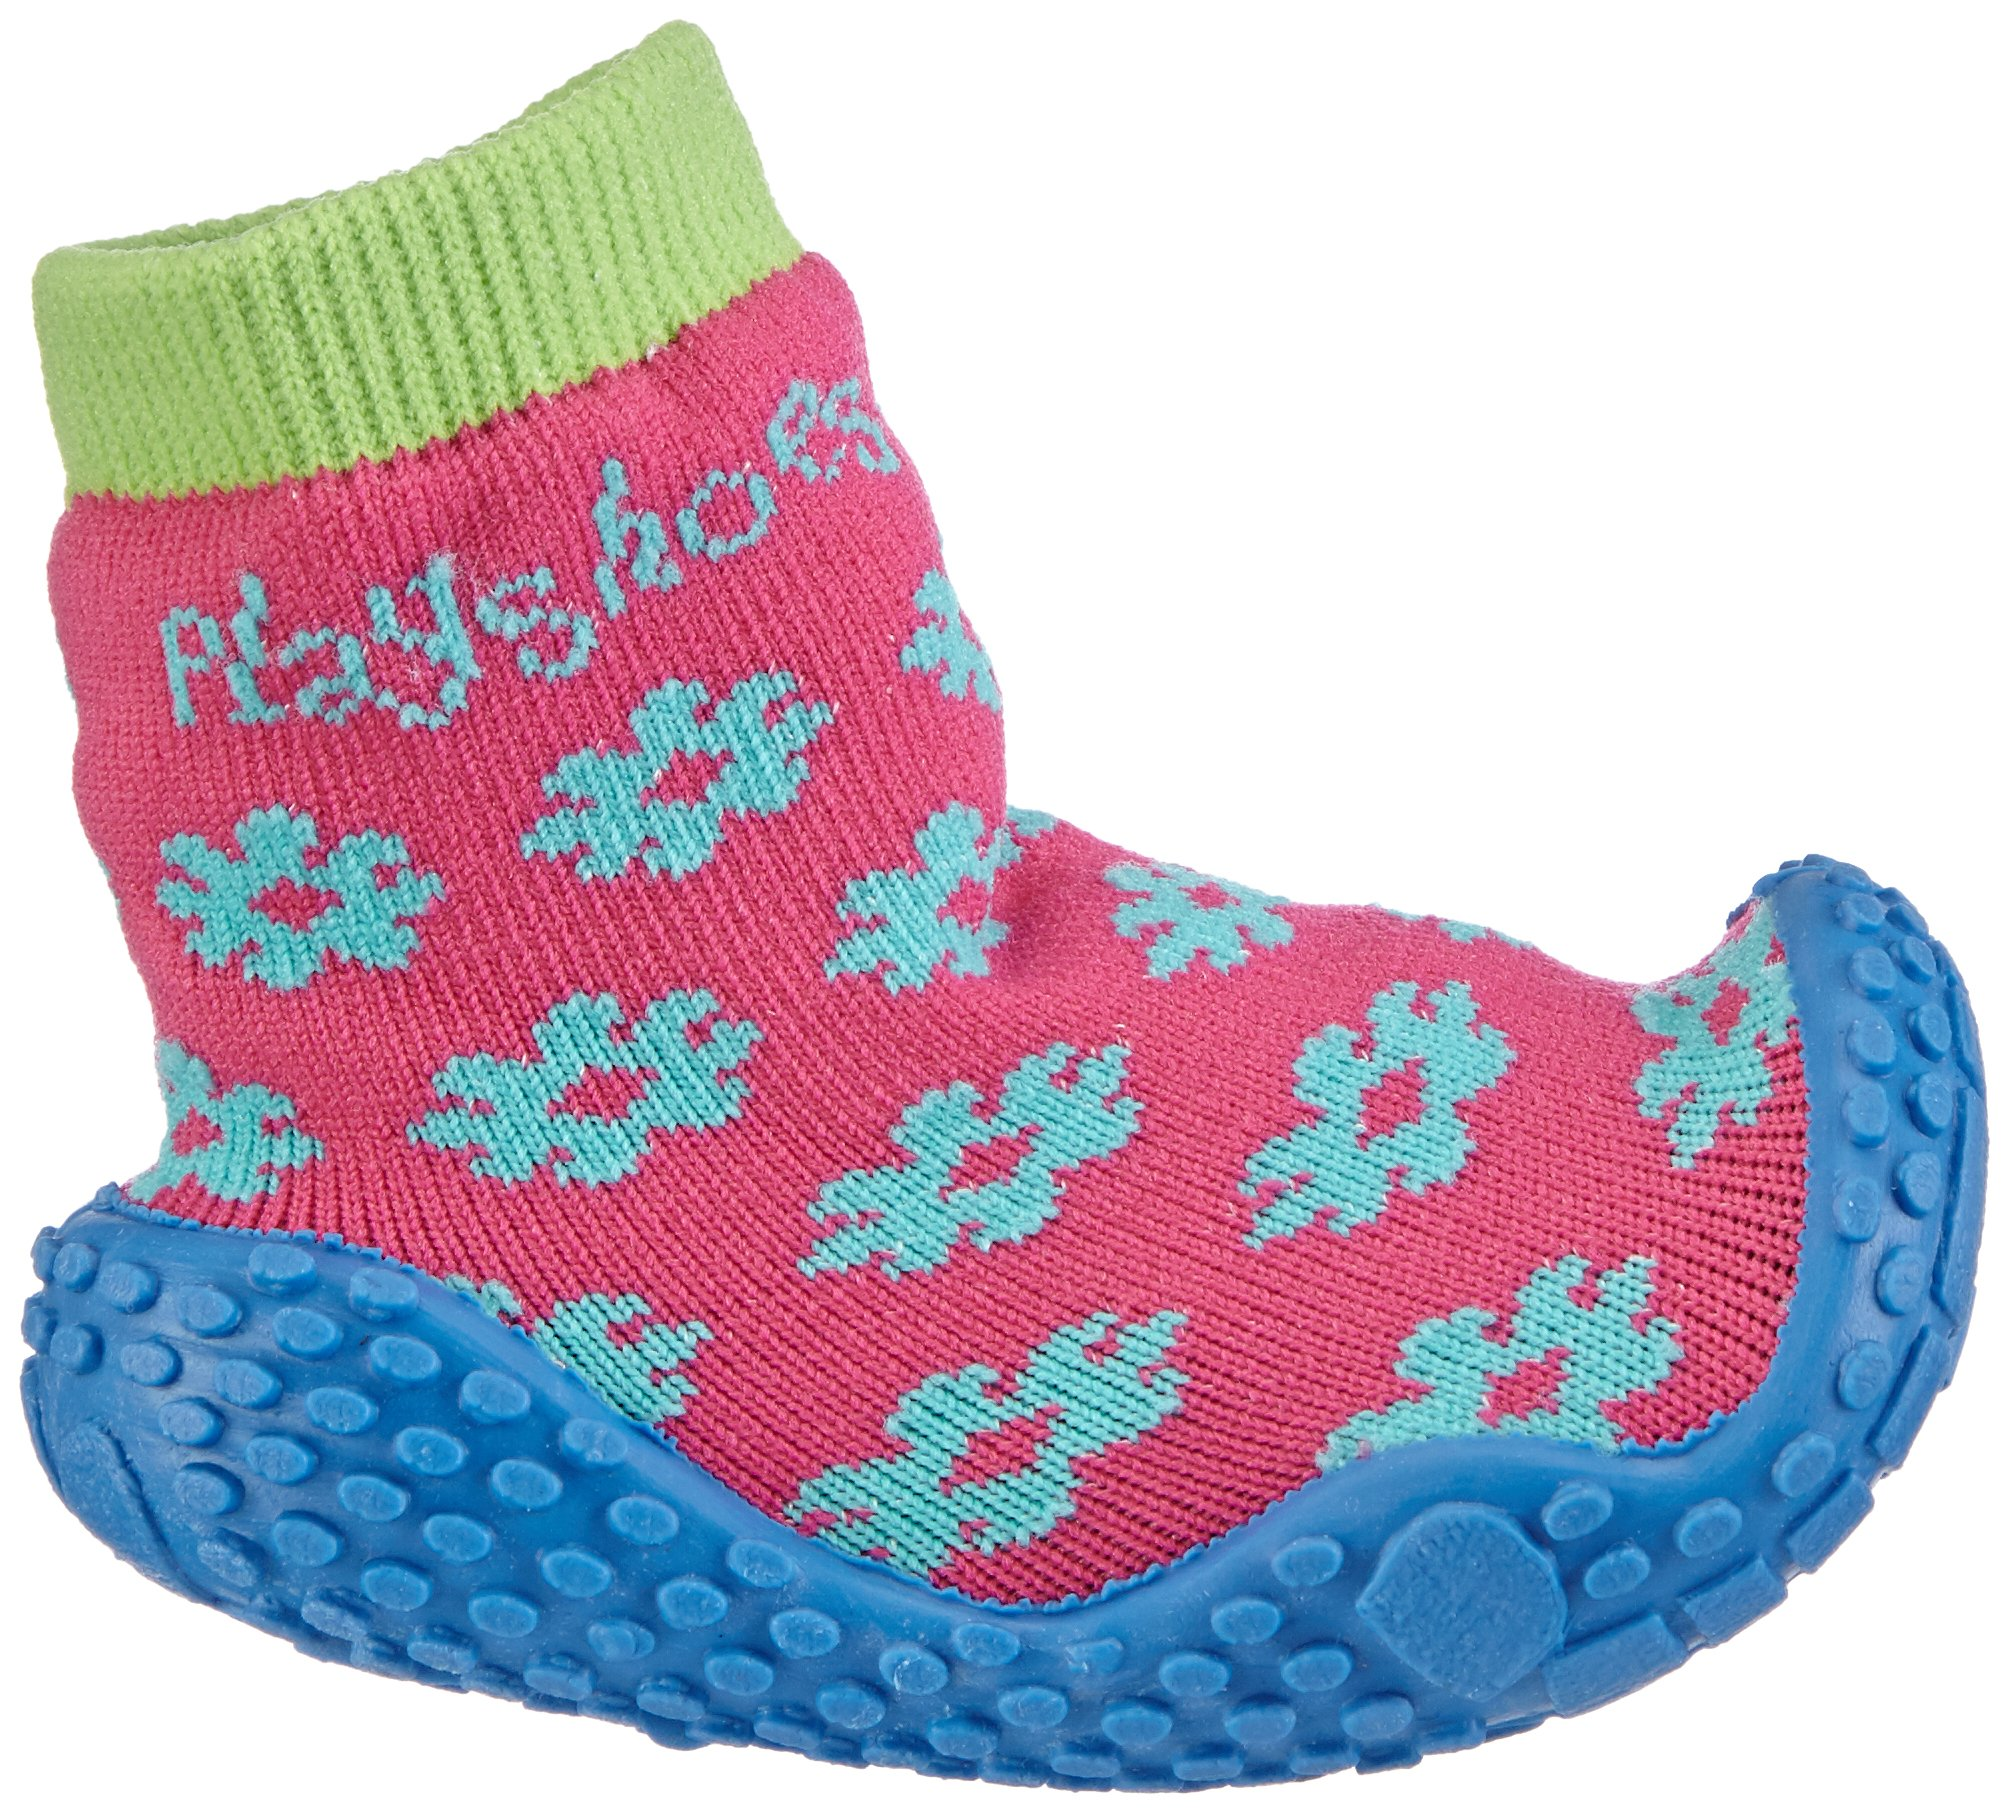 Playshoes Girls Flower Collection Rubber Aqua Swim/Beach Shoes (4.5 M US Toddler) by Playshoes (Image #6)